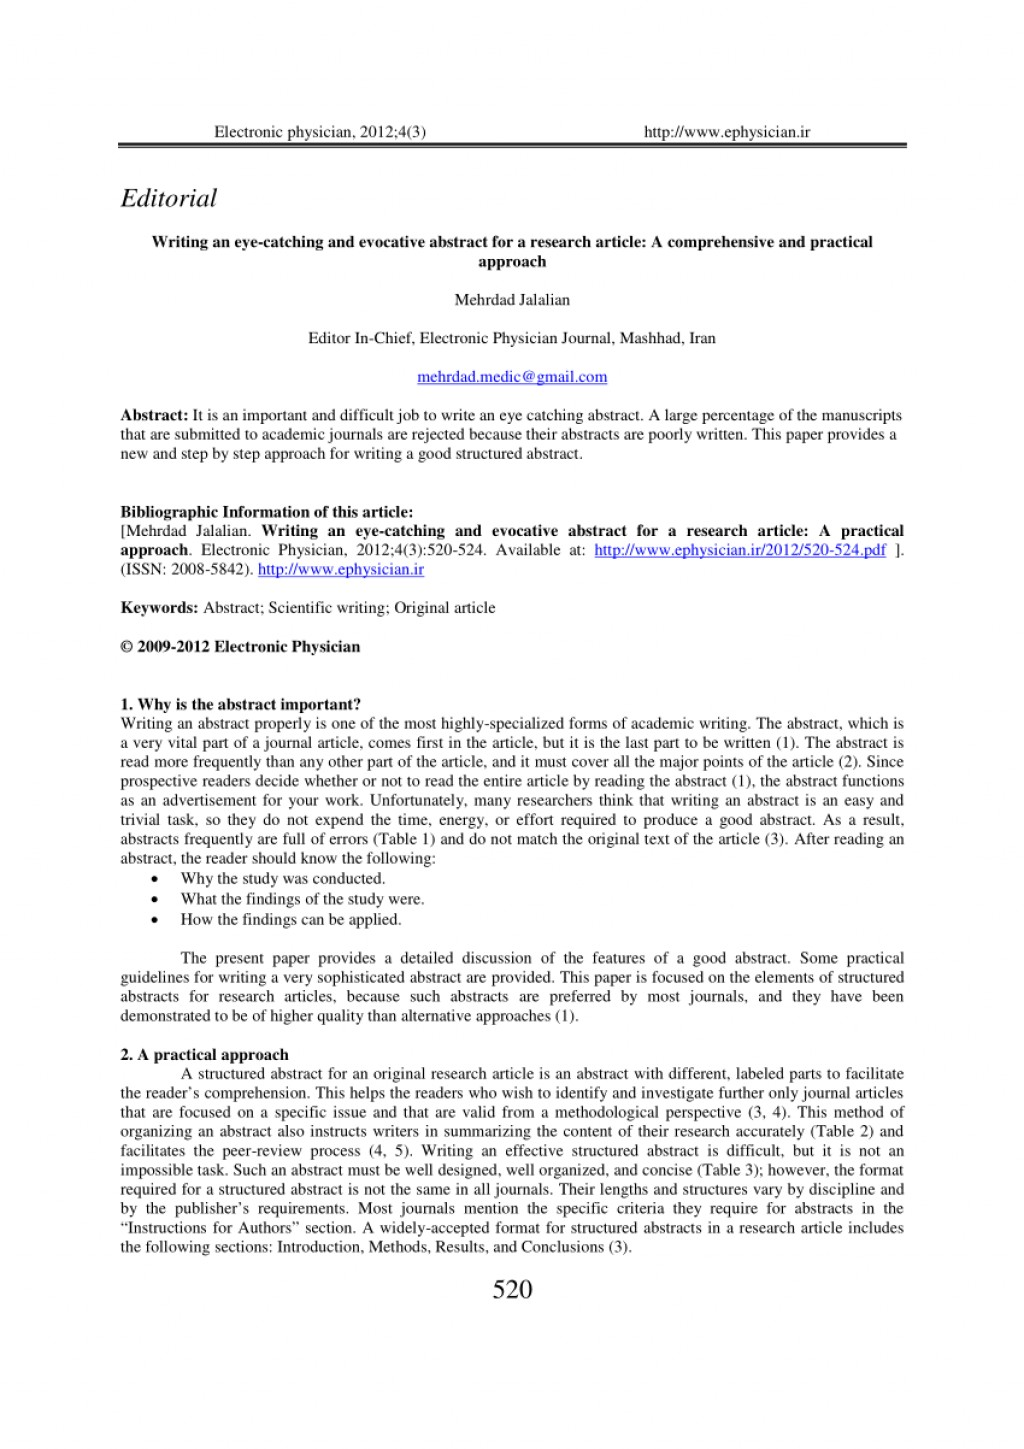 001 Poorly Written Researchs Largepreview Stunning Research Papers Examples Of Badly Large